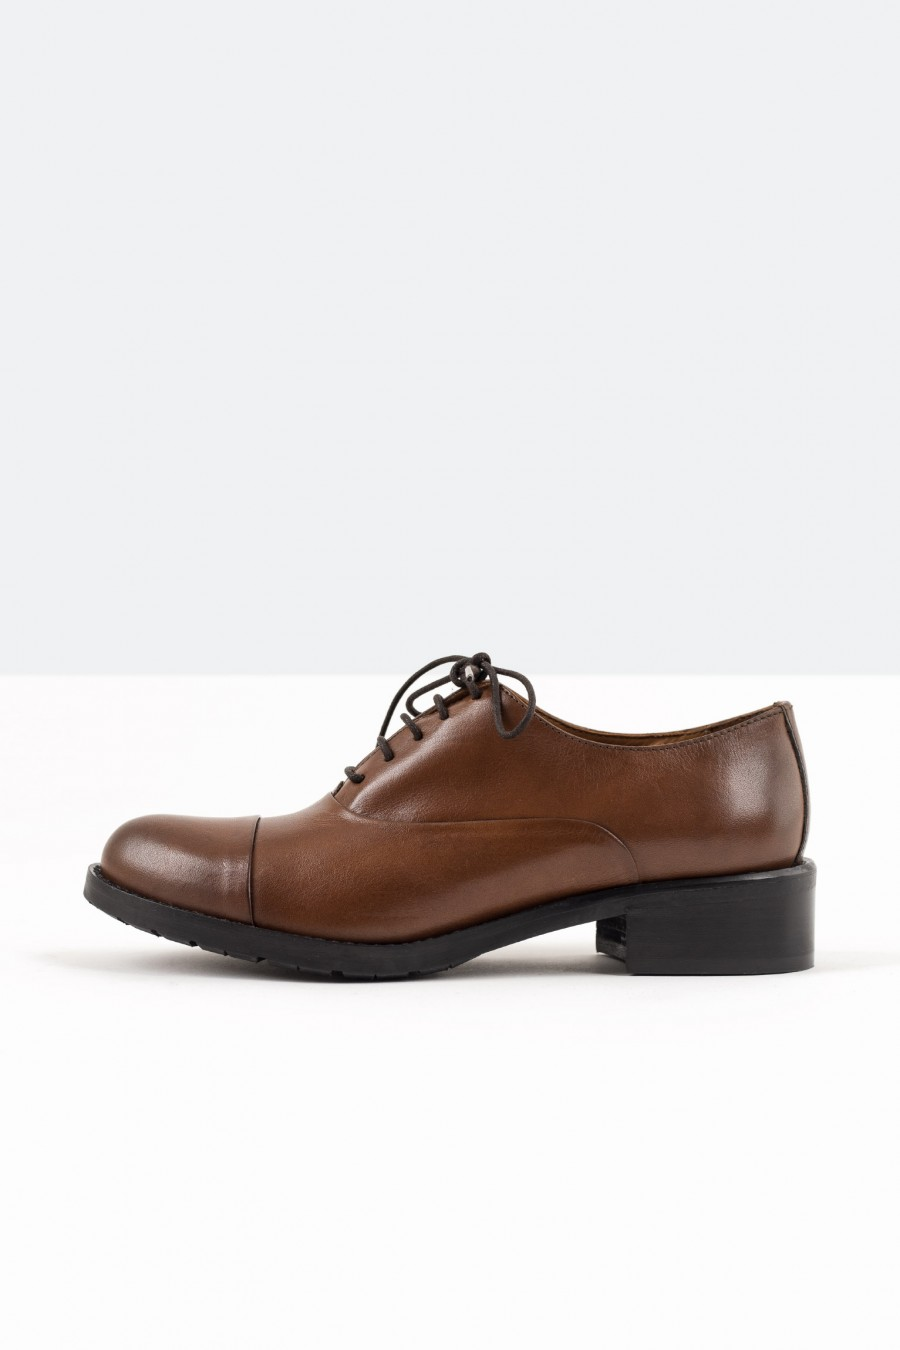 Casual brown leather derby shoes